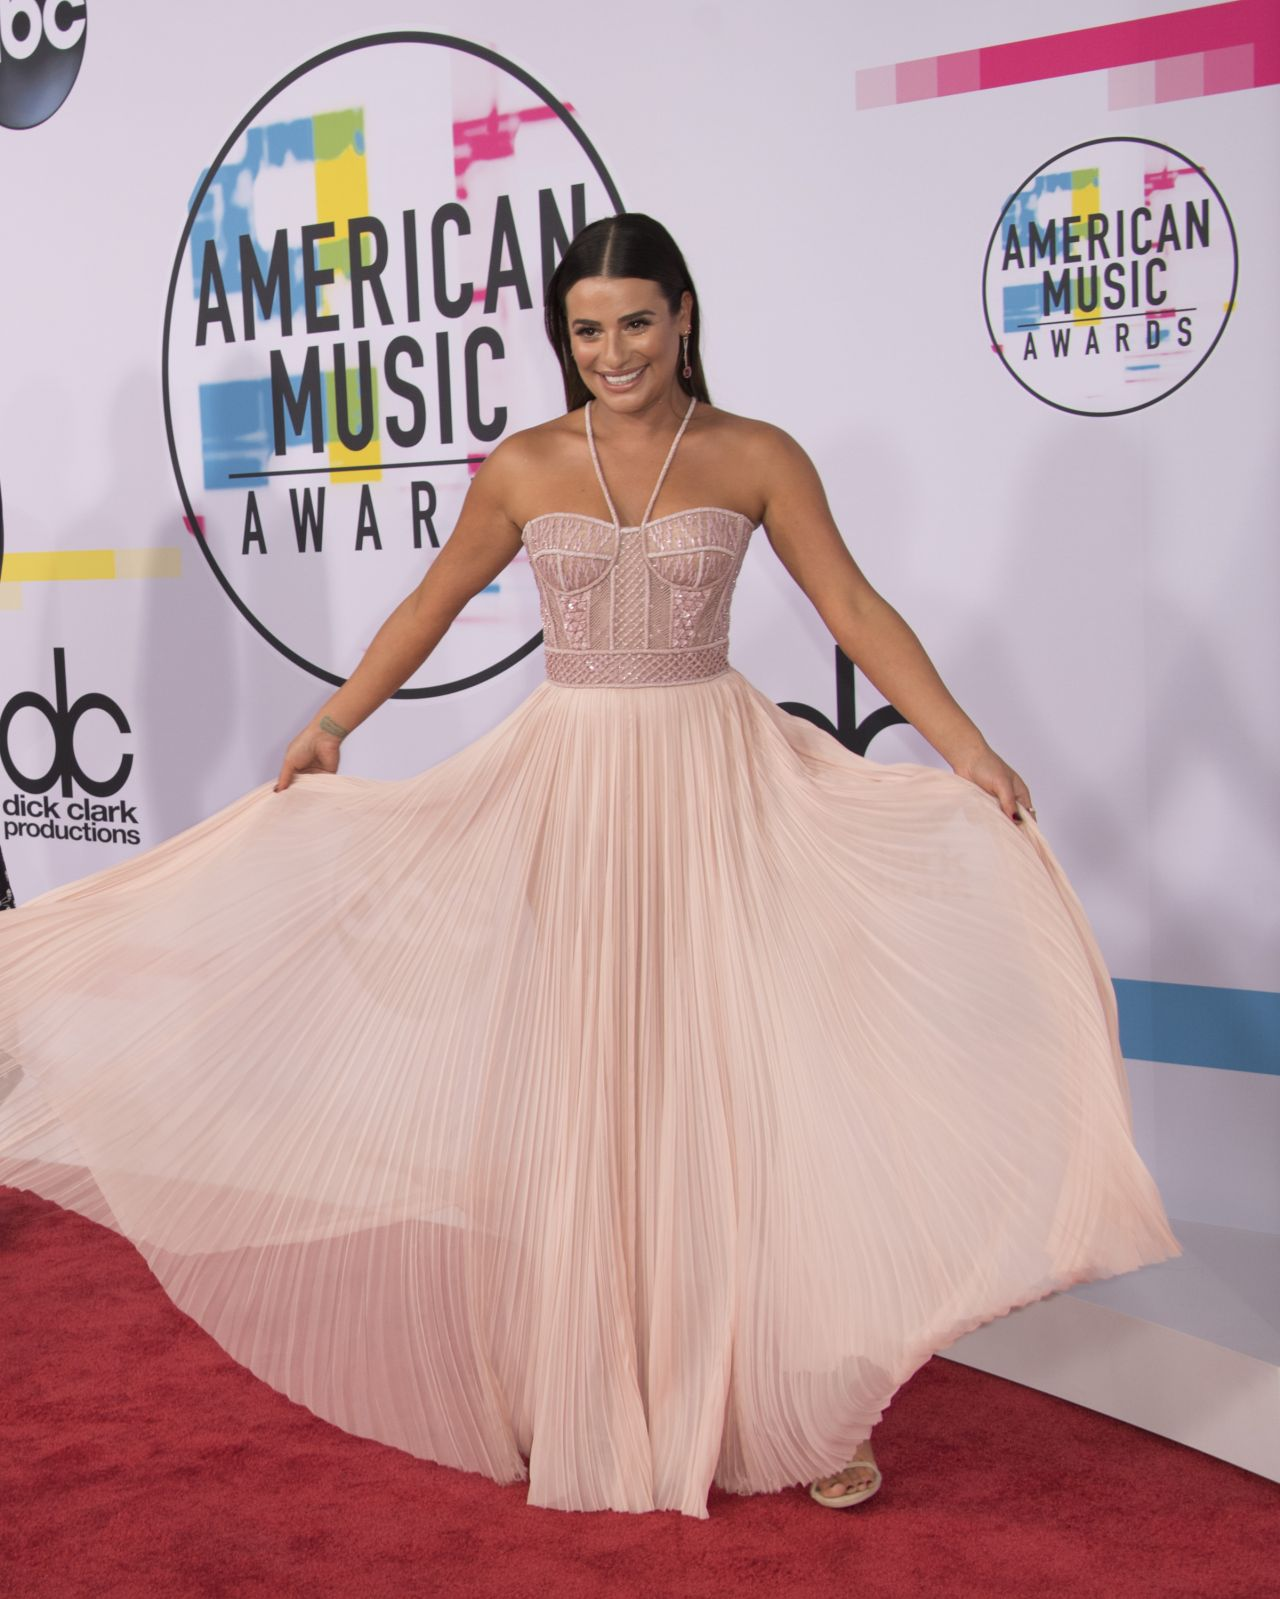 http://celebmafia.com/wp-content/uploads/2017/11/lea-michele-american-music-awards-2017-in-los-angeles-2.jpg